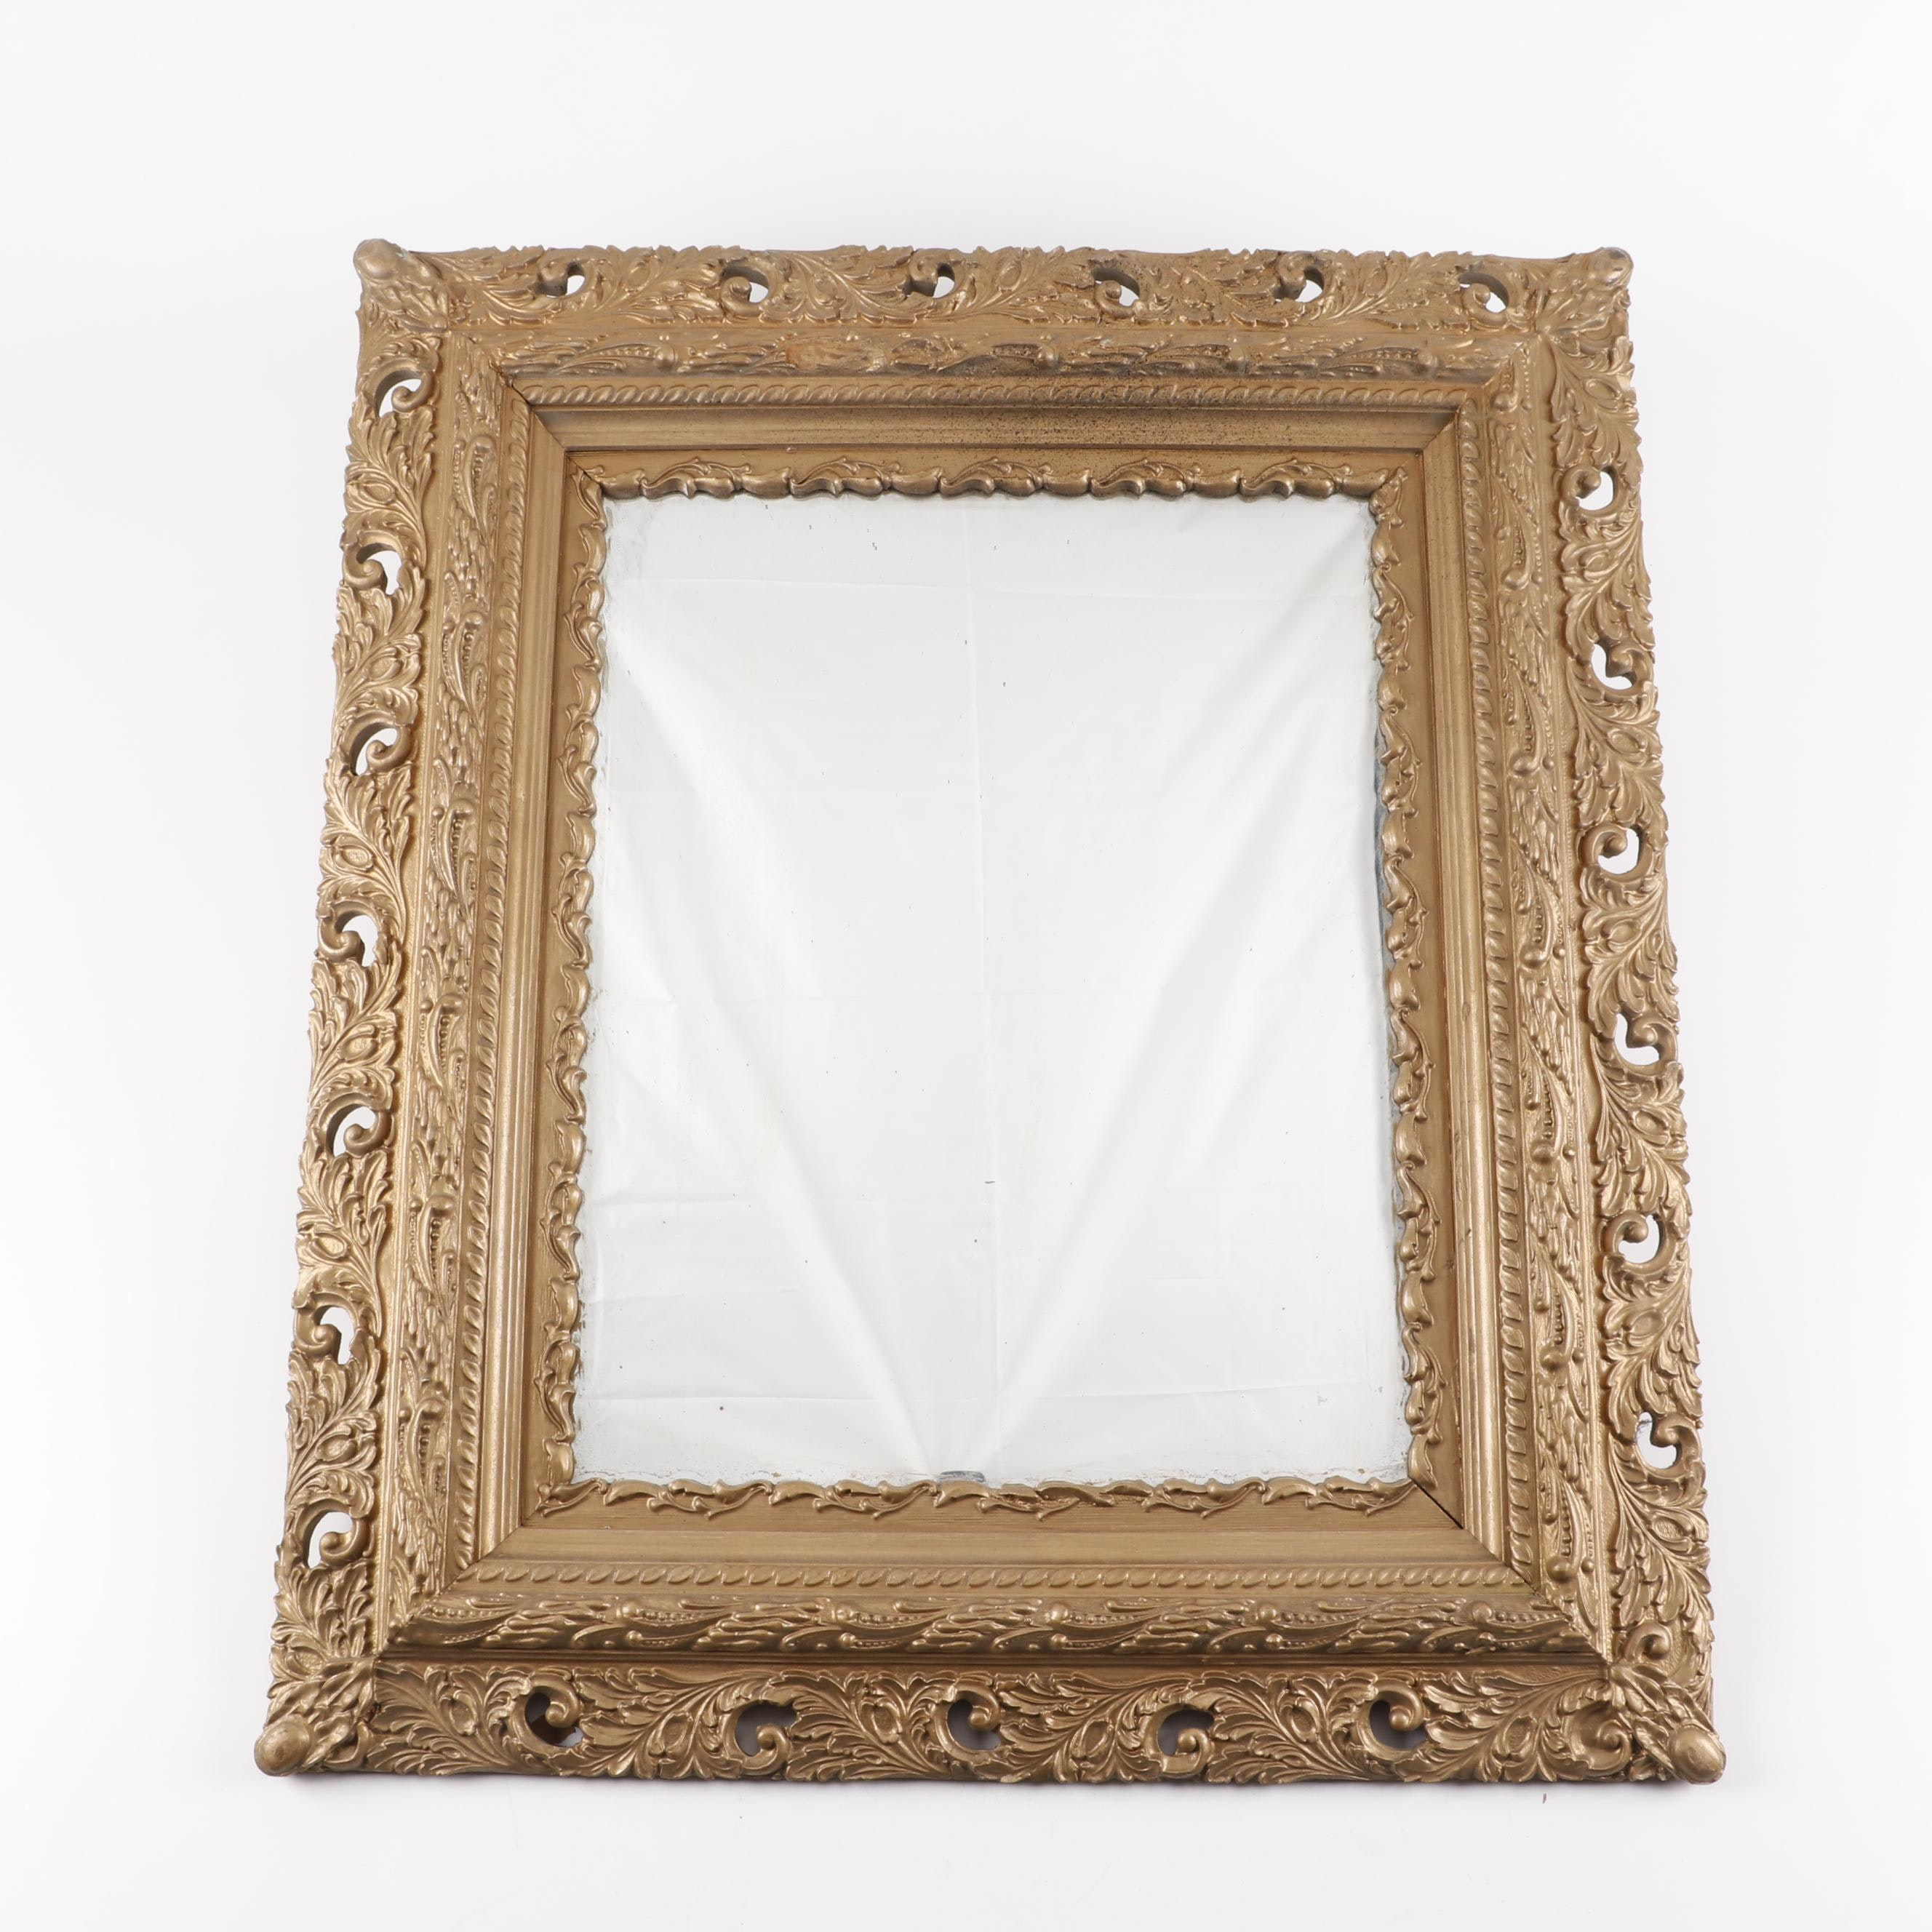 Gold Painted Gesso and Wood Framed Wall Mirror, Early 20th Century